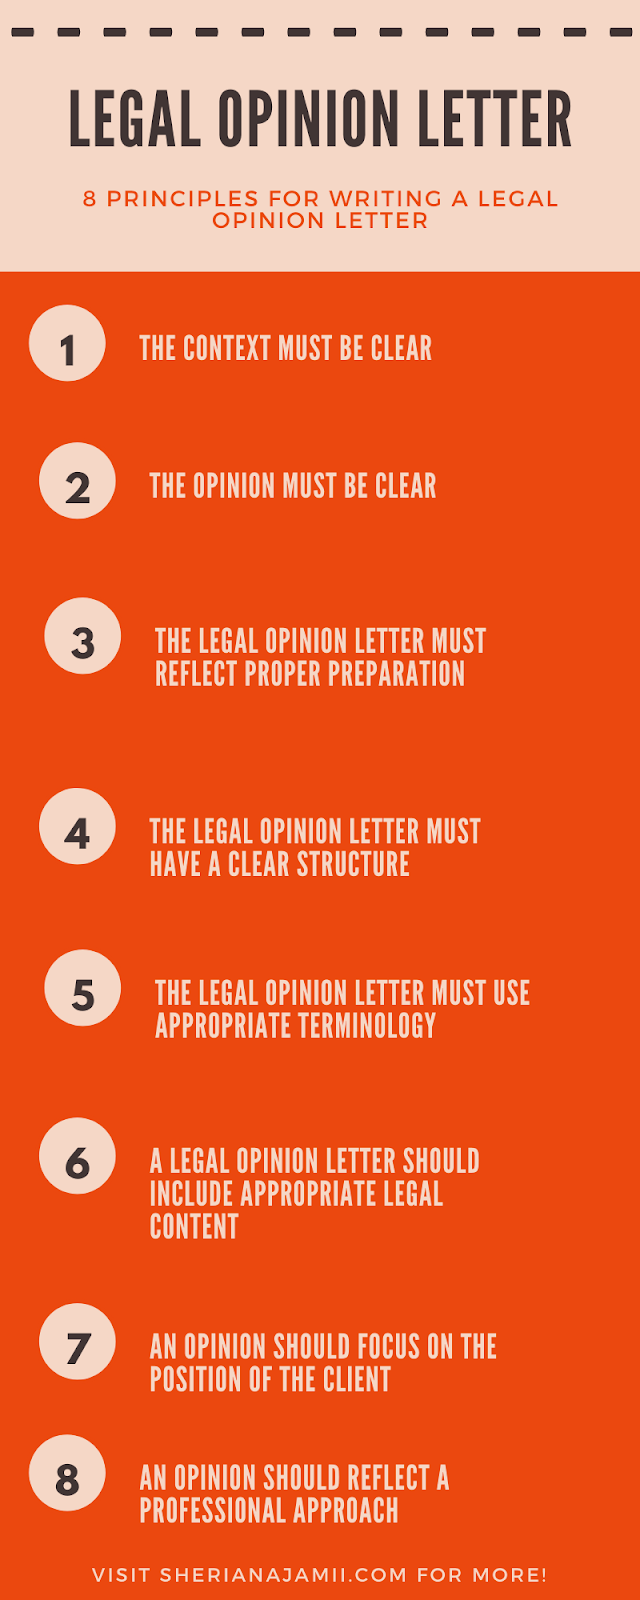 8 Principles for drafting /writing a legal opinion letter